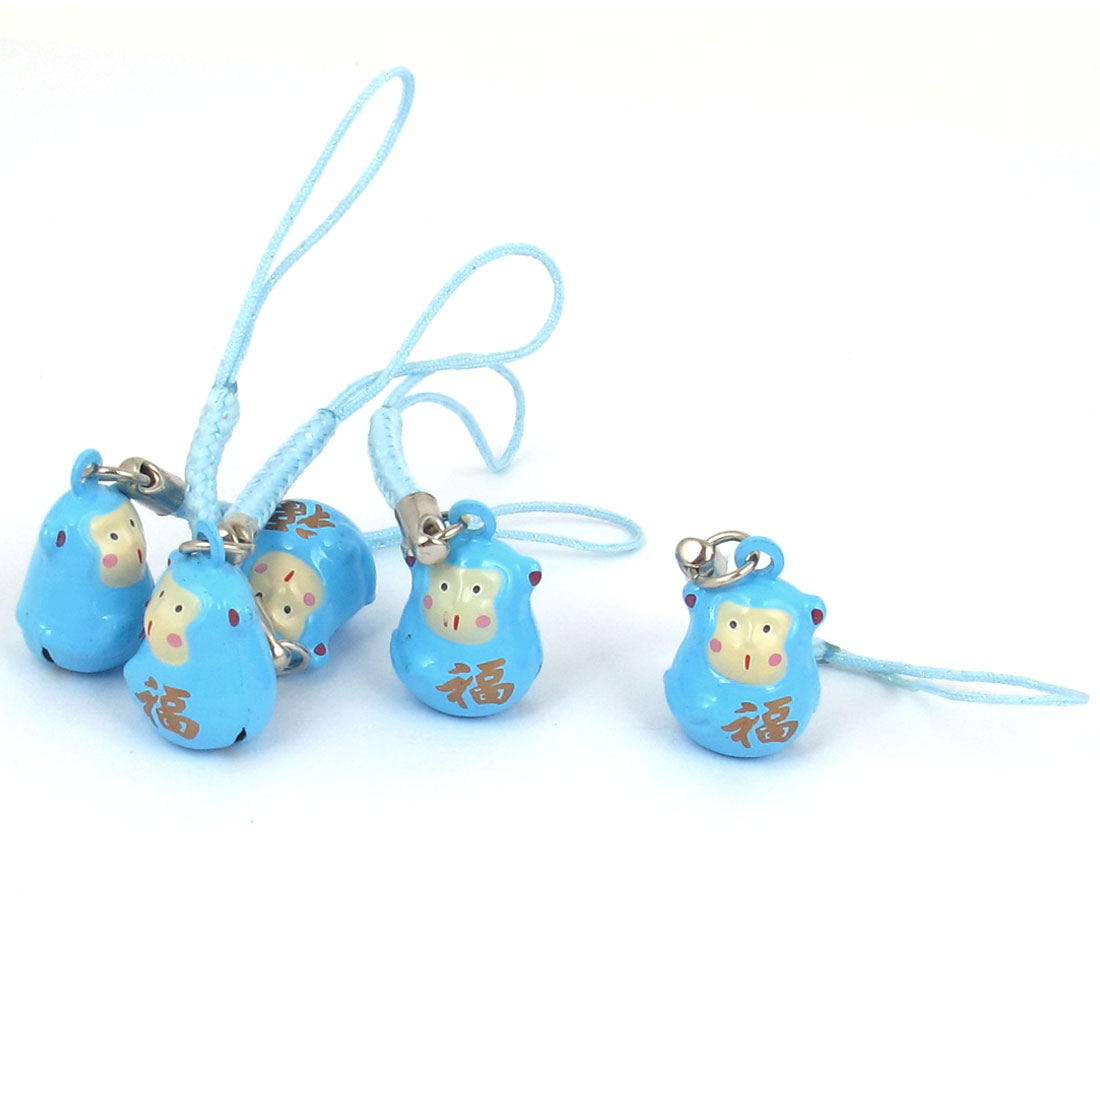 Metal Monkey Cartoon Design Hanging Ring Bell Light Blue 18mm Diameter 5 Pcs